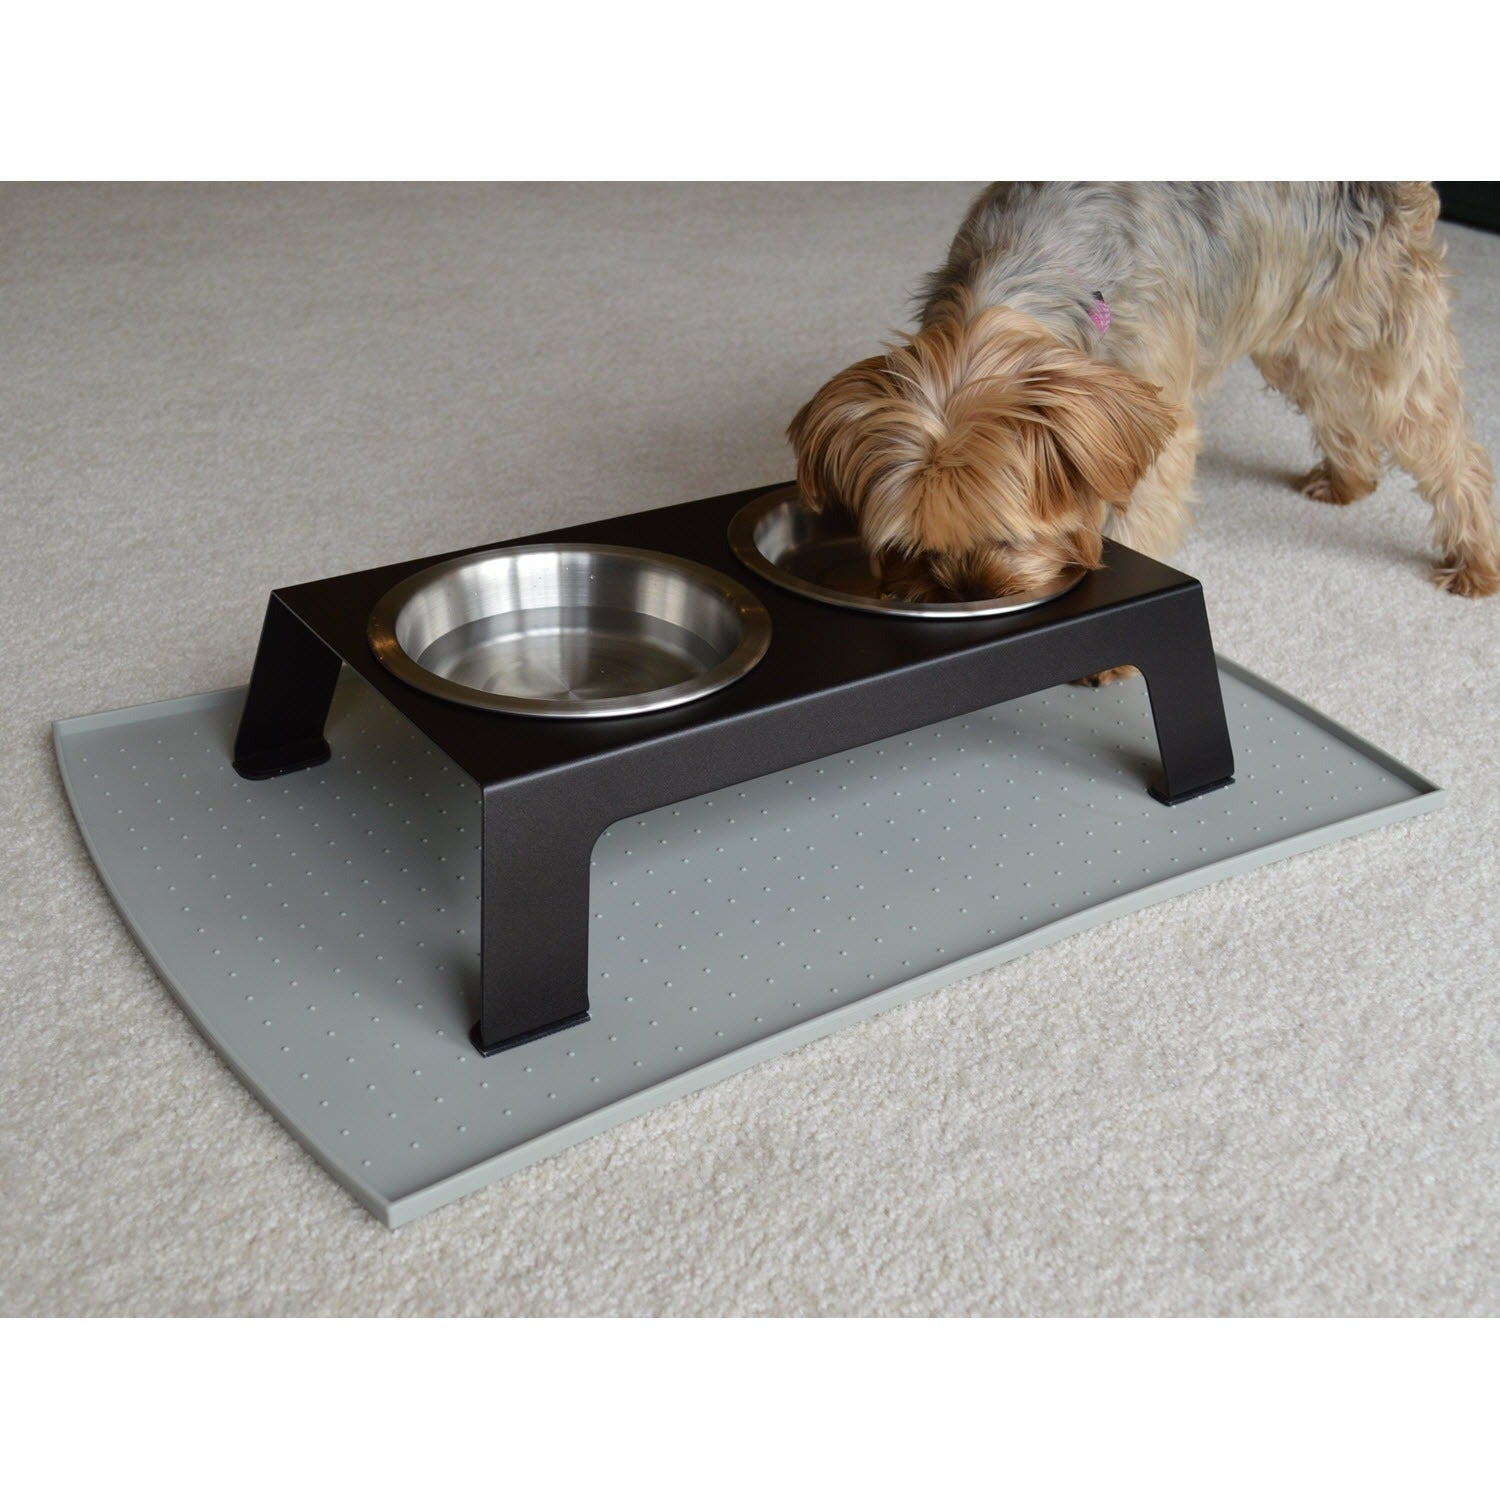 ceramic bowls full feeder elevated mid il pet water stand or all uk canada modern century bowl mat australia bedroom dog cat cheap